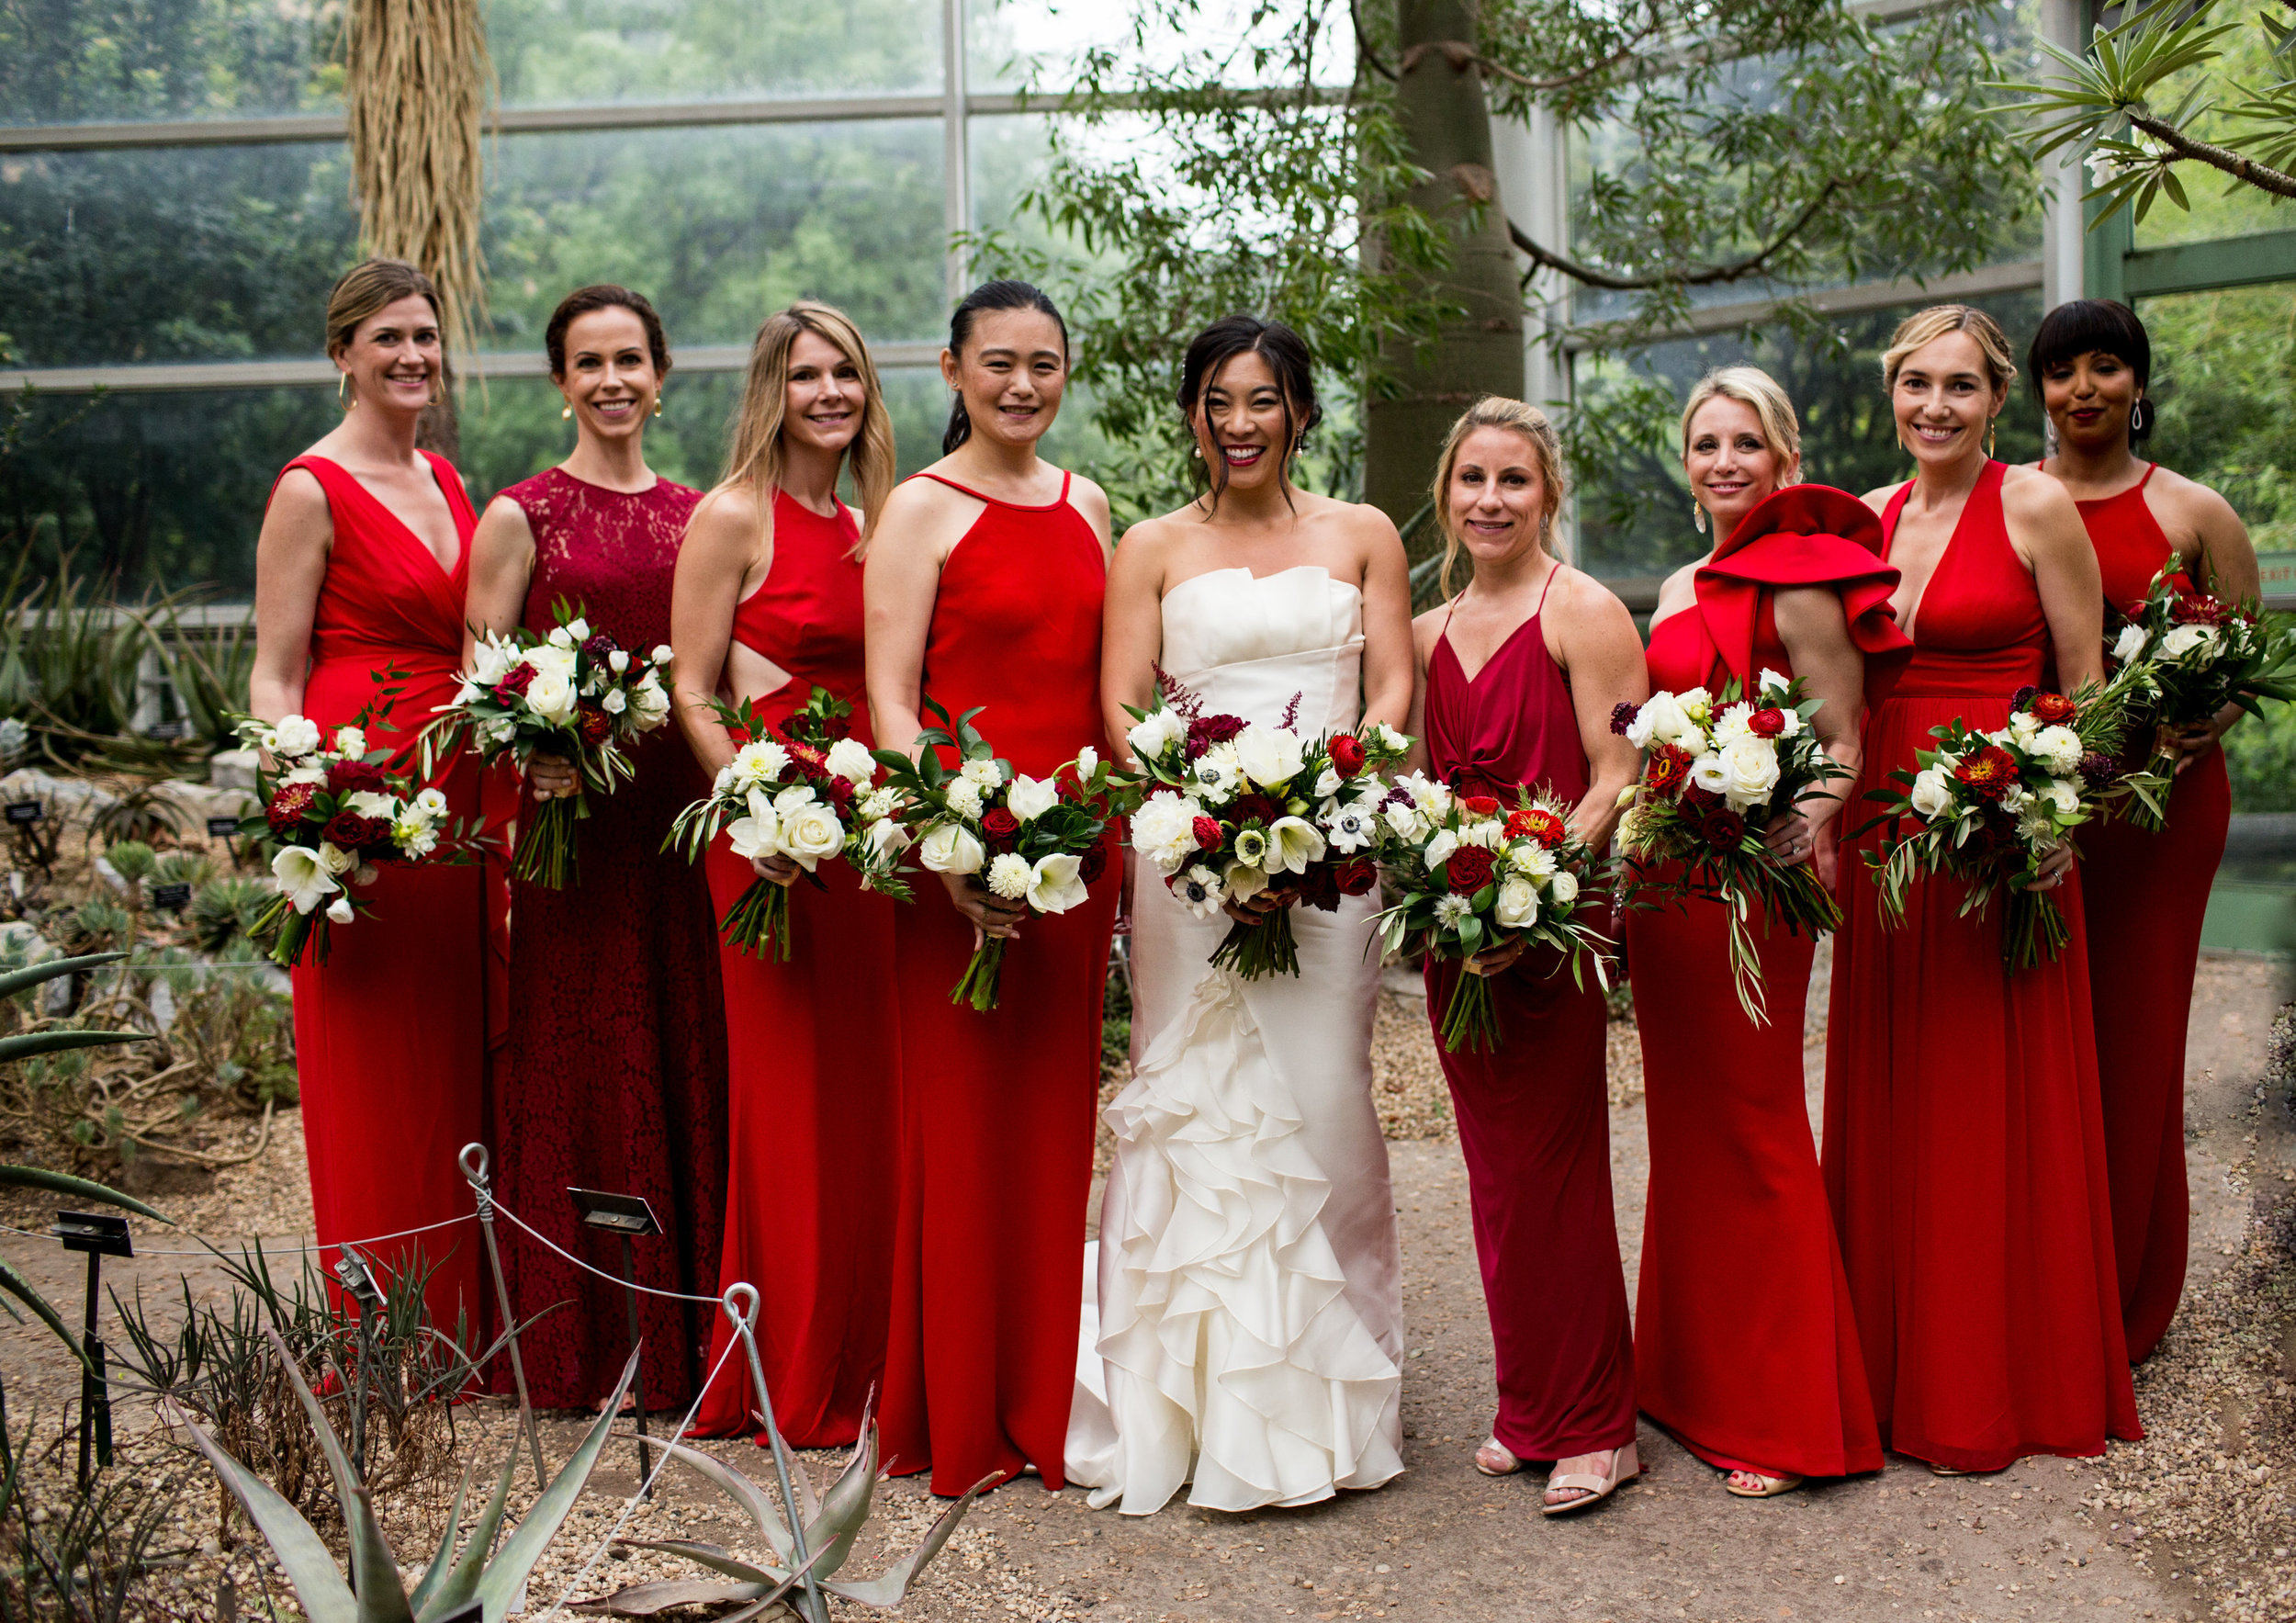 Brooklyn Botanical Gardens Wedding. From Parris With Love Photography.